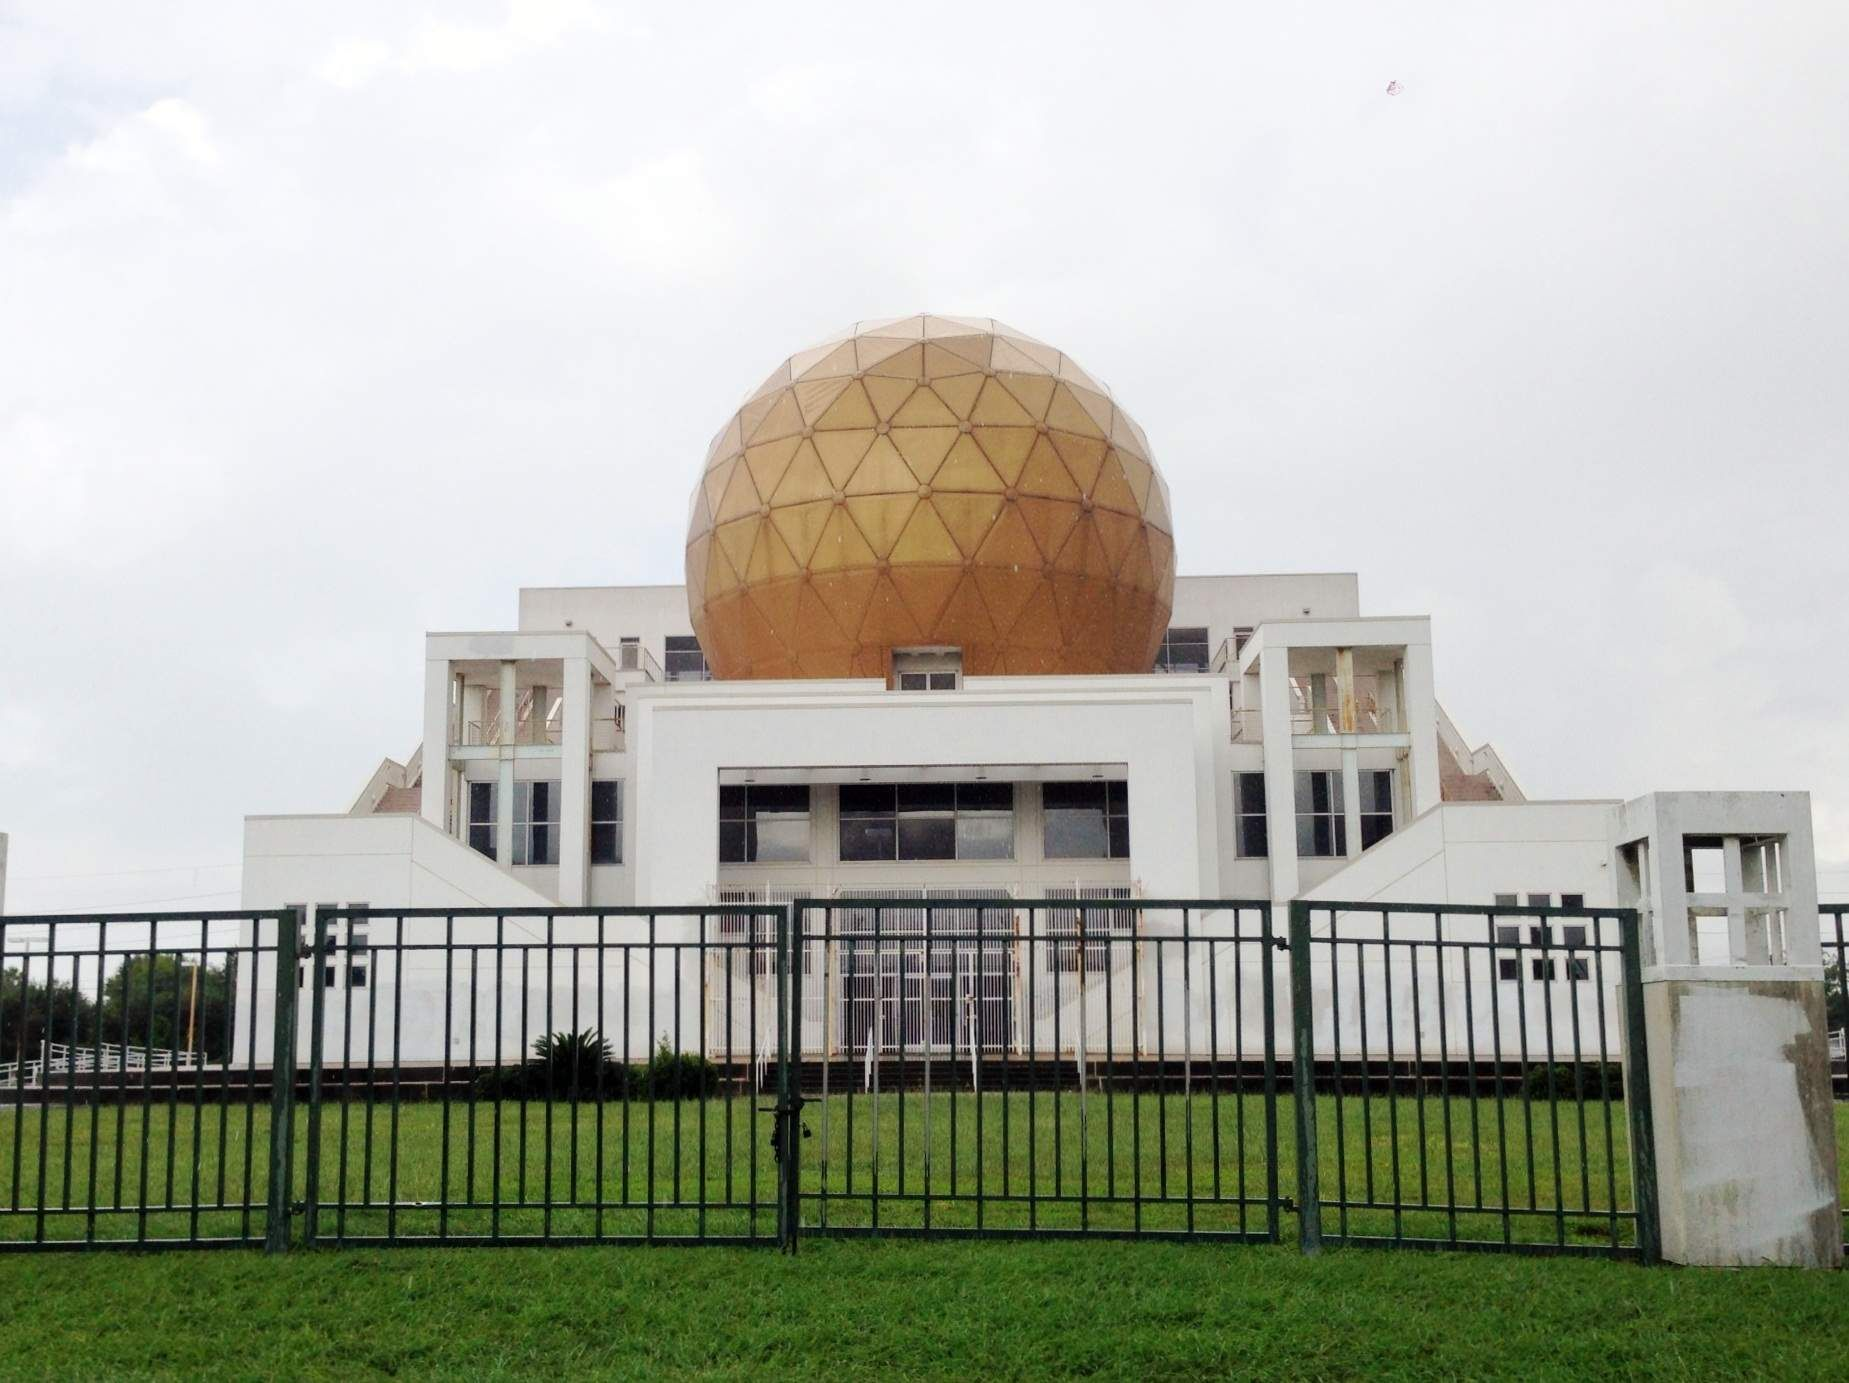 Houston-abandoned palace in the middle of a neighborhood on Ashford Point. With a 40ft gold dome, the unfinished and abondoned Chong Hua Sheng Mu Holy Palace is one of the more bizarre things in Houston (and we have The Orange Show). Also known as the Palace of the Golden Orbs, the $6 million fortress was built by members of a Chinese universalist religious organization that had plans to complete the temple complex before the sect's leader was deported in 1999.